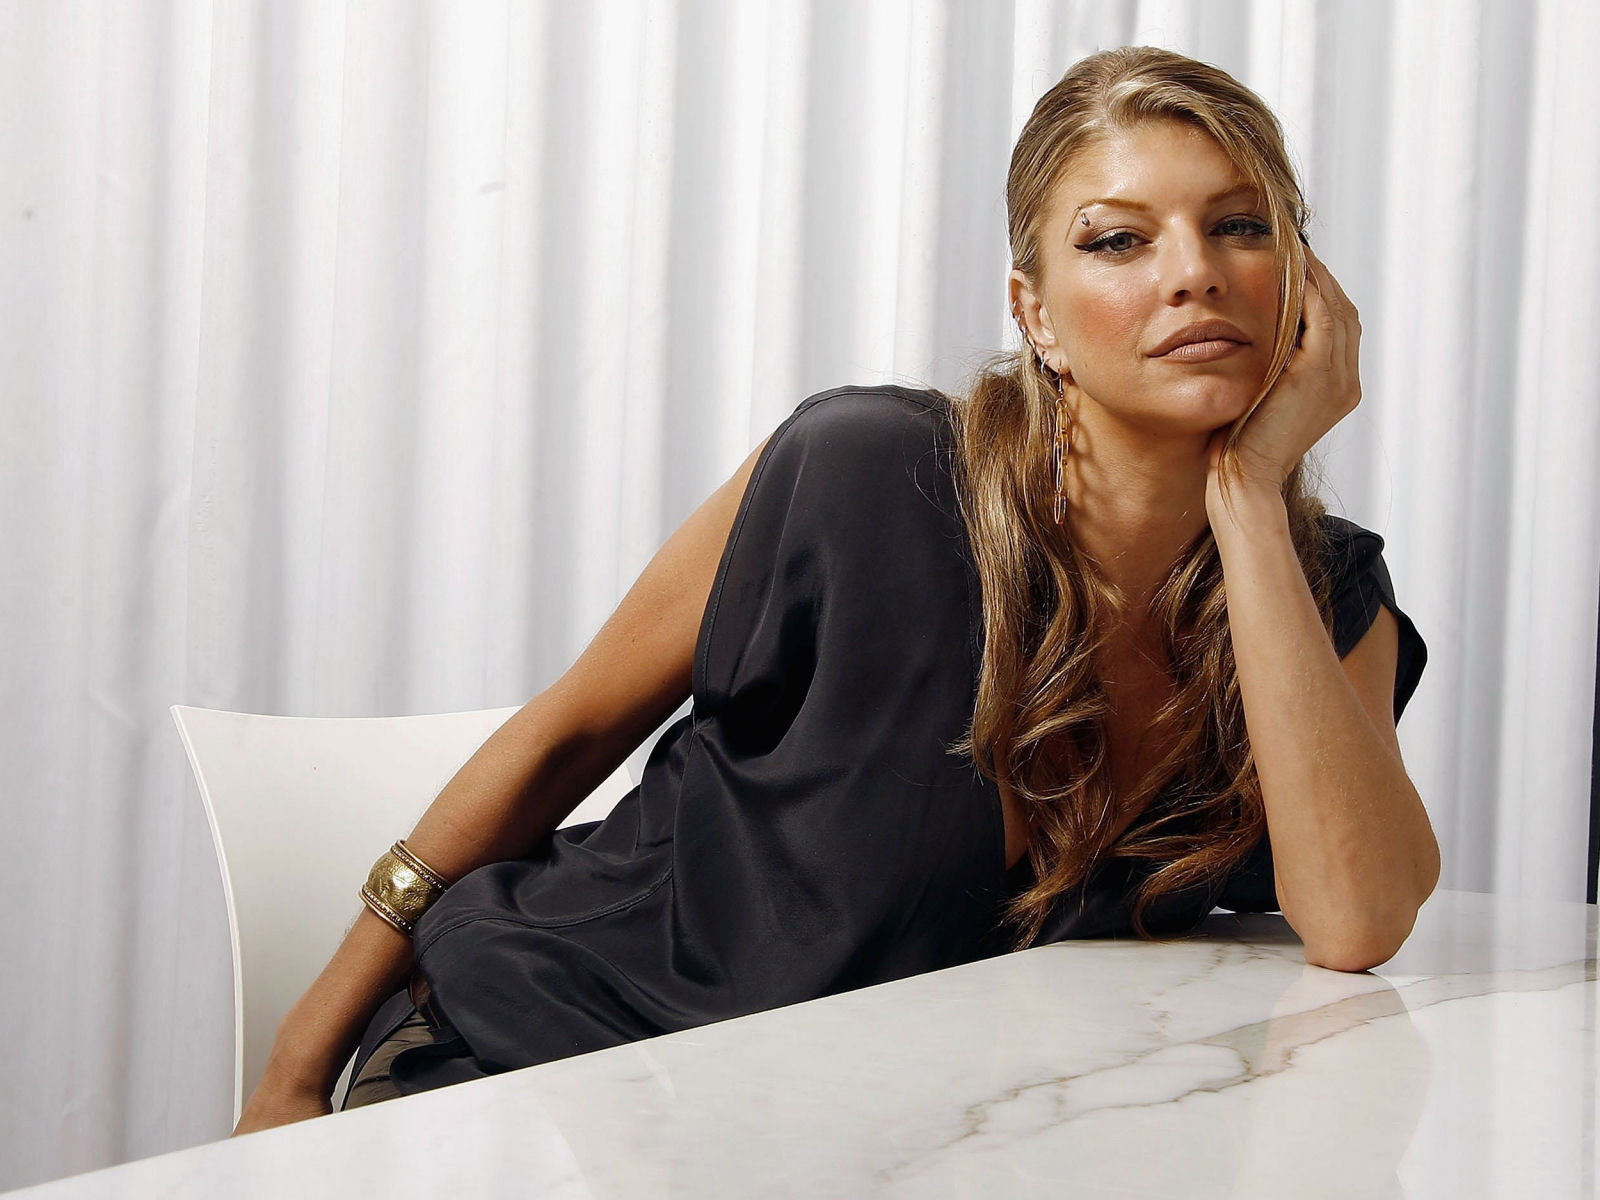 http://2.bp.blogspot.com/_KKDnGVCisFs/TBFUkwVT26I/AAAAAAAAFeA/gqIqqsDbvOM/s1600/fergie-in-black-dress-wallpapers_11298_1600x1200.jpg